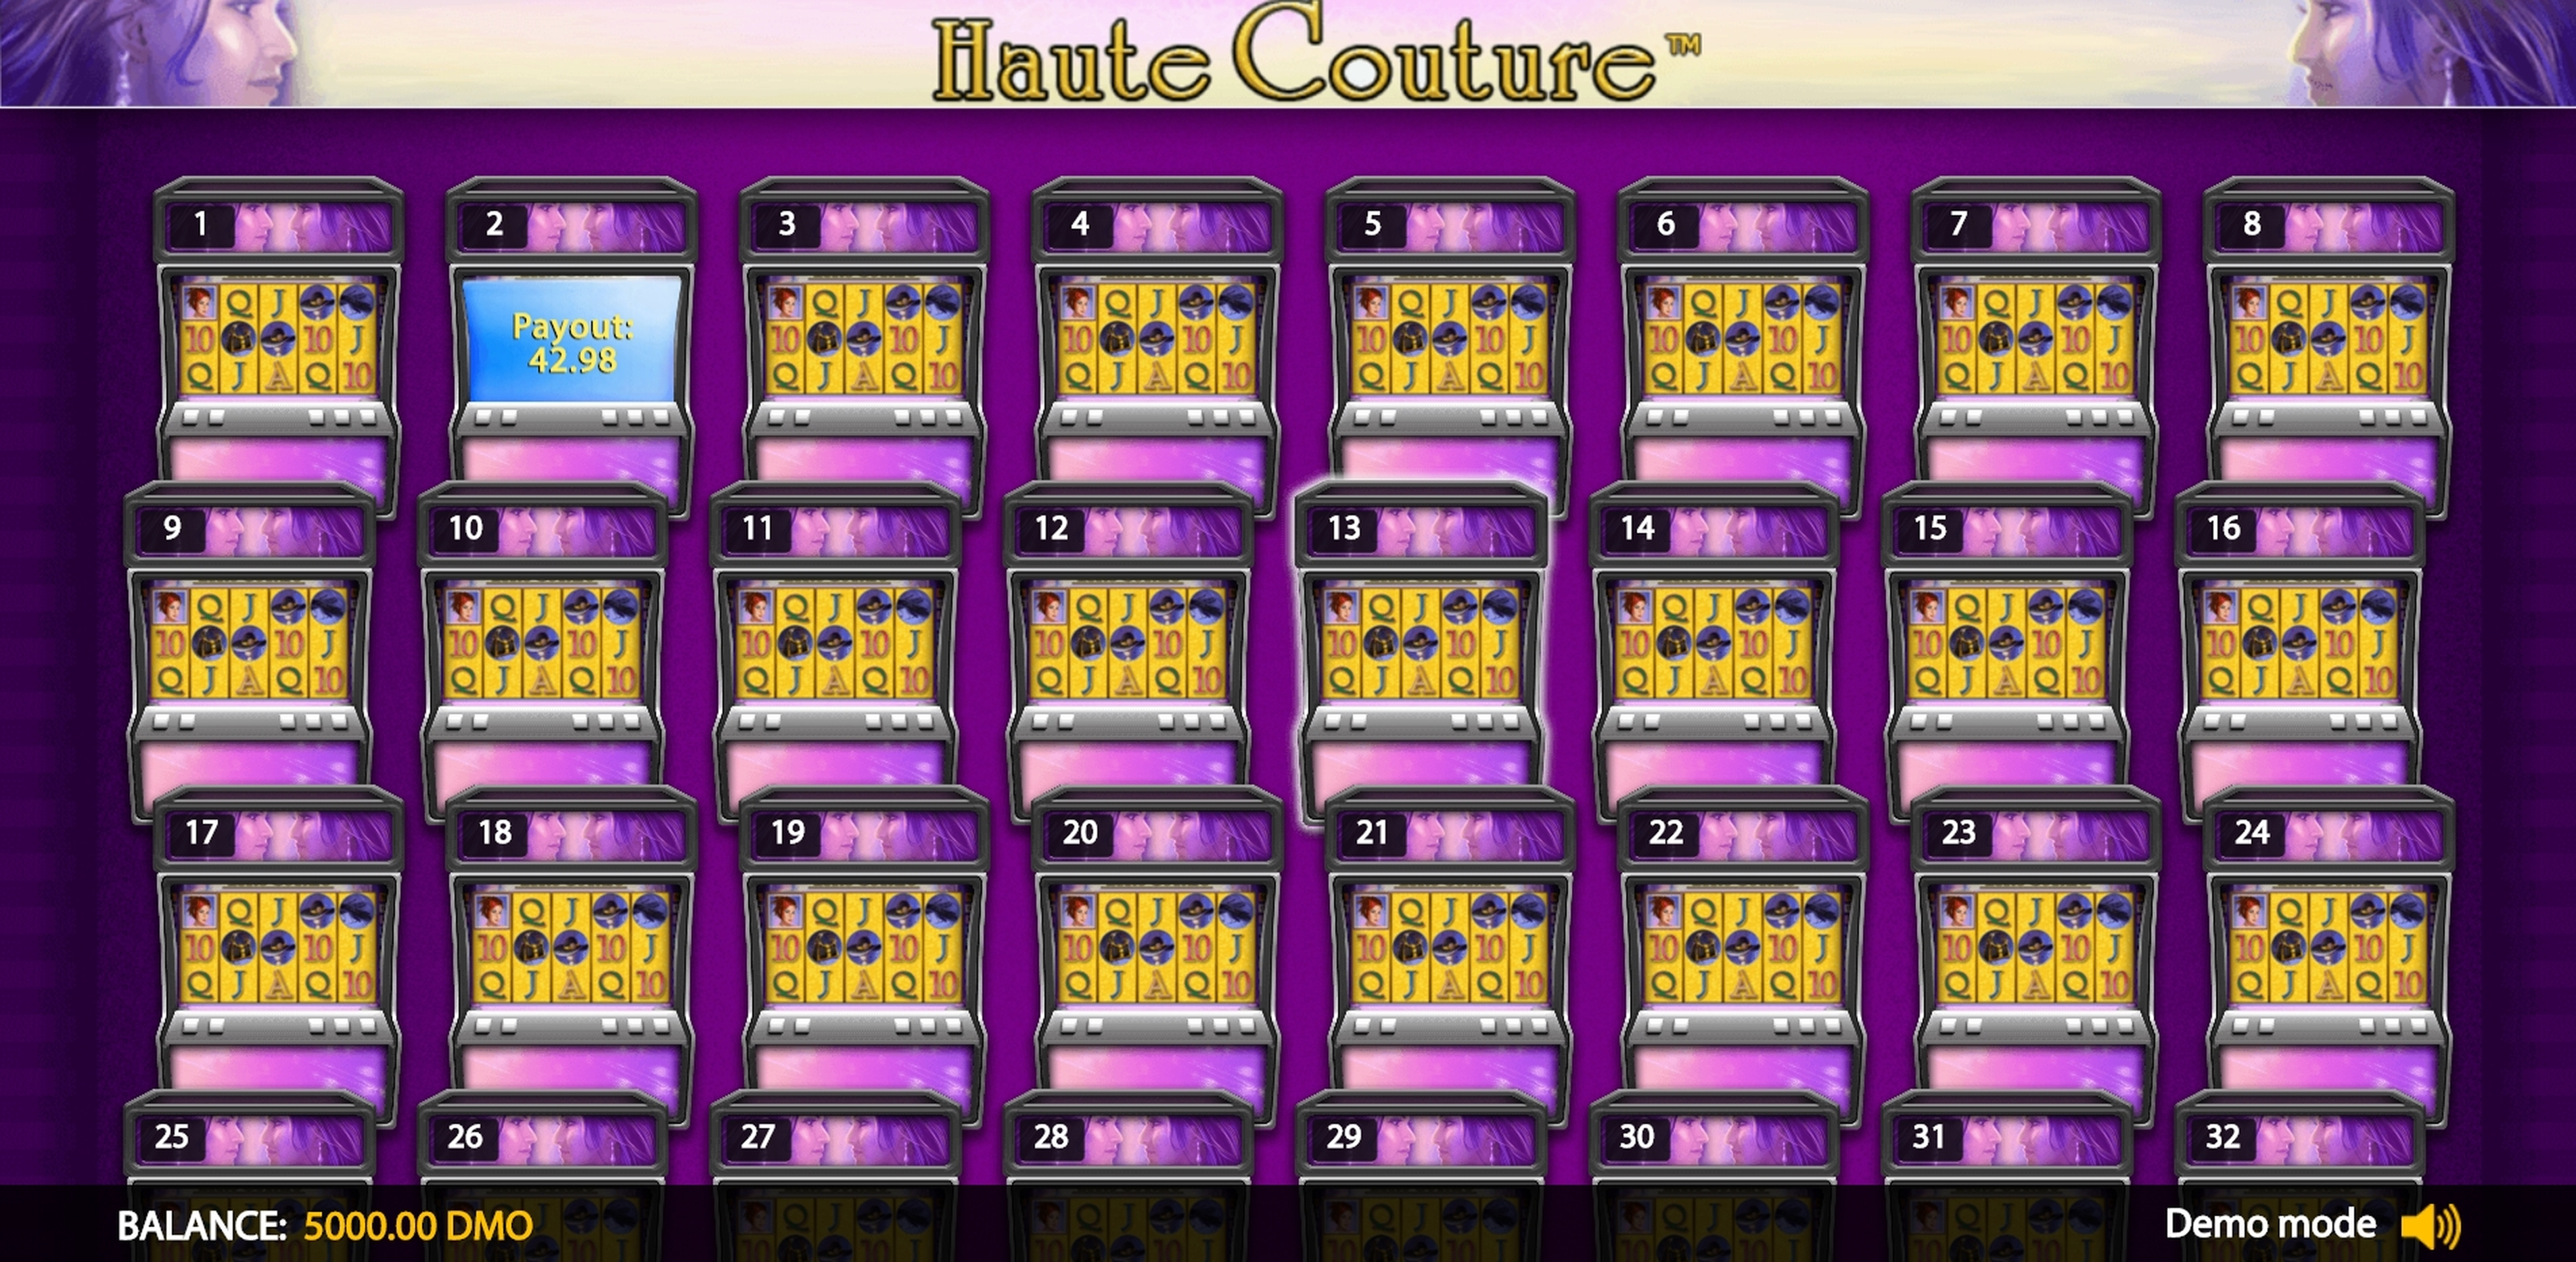 Play Haute Couture Deluxe Free Casino Slot Game by Novomatic